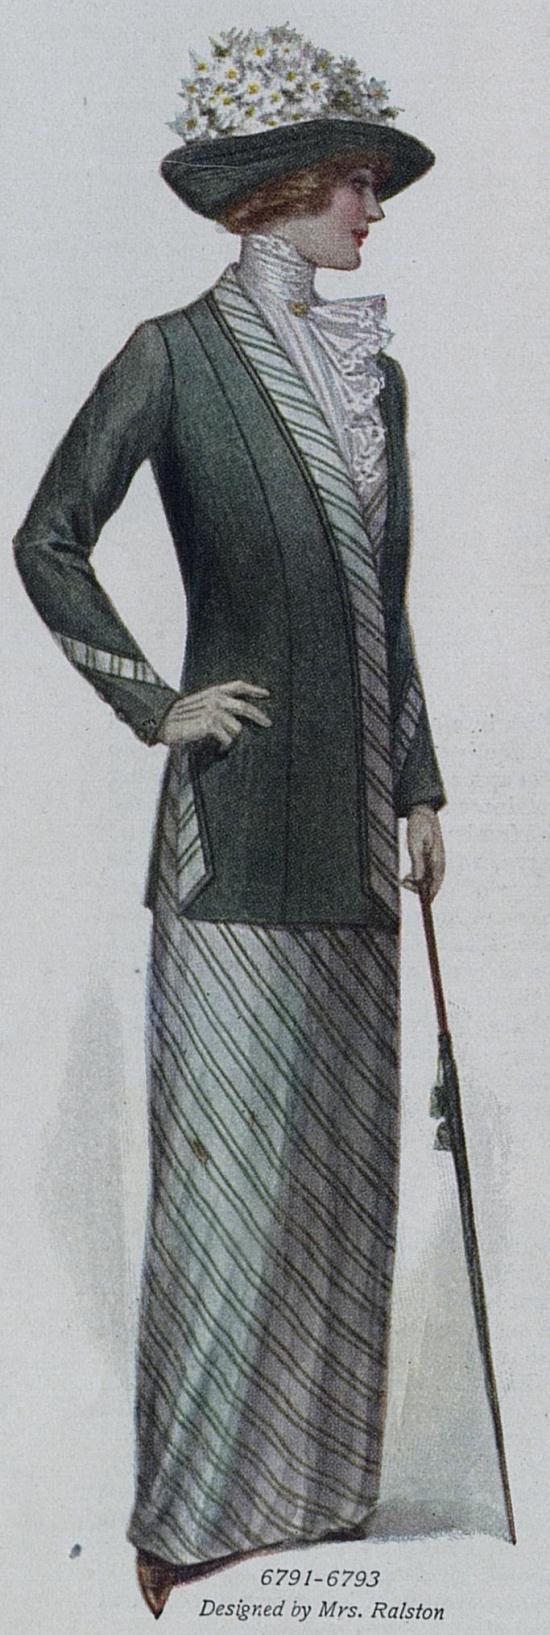 Suit with Matching Striped Shirt and Skirt Edwardian